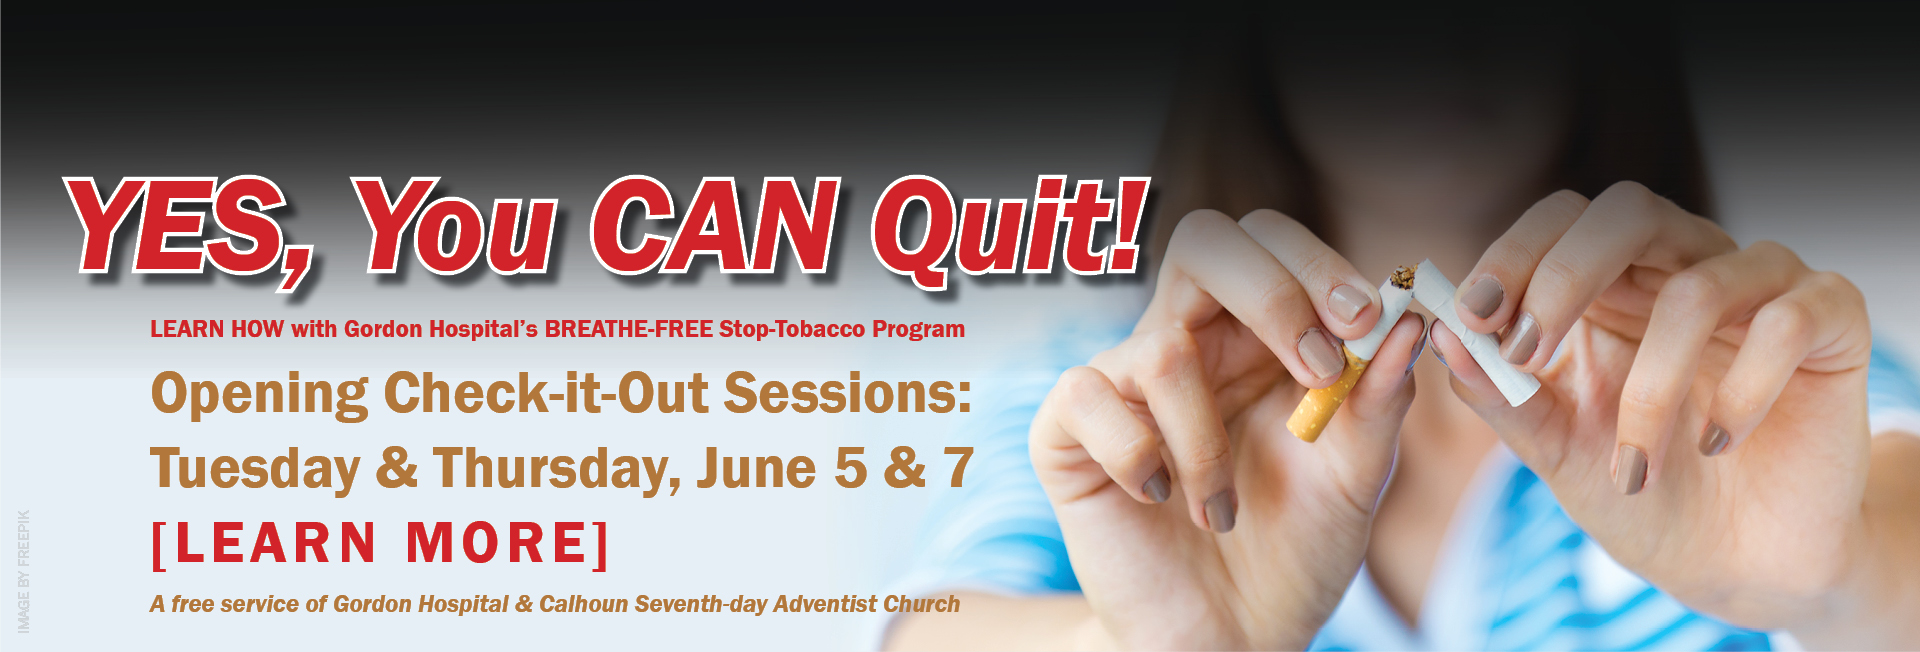 YES, You CAN Quit Smoking!